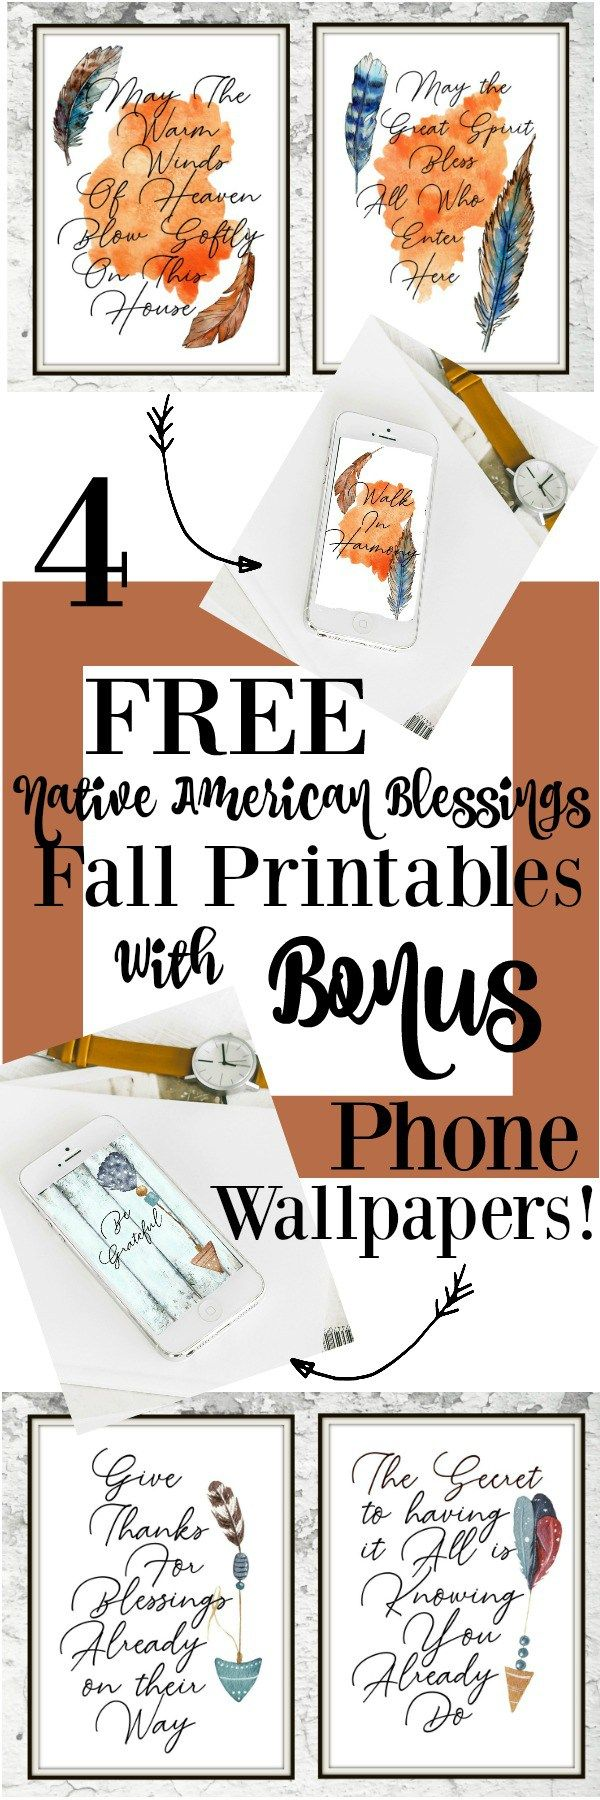 Get your FREE Native American blessings printables! With a bonus digital wallpap...